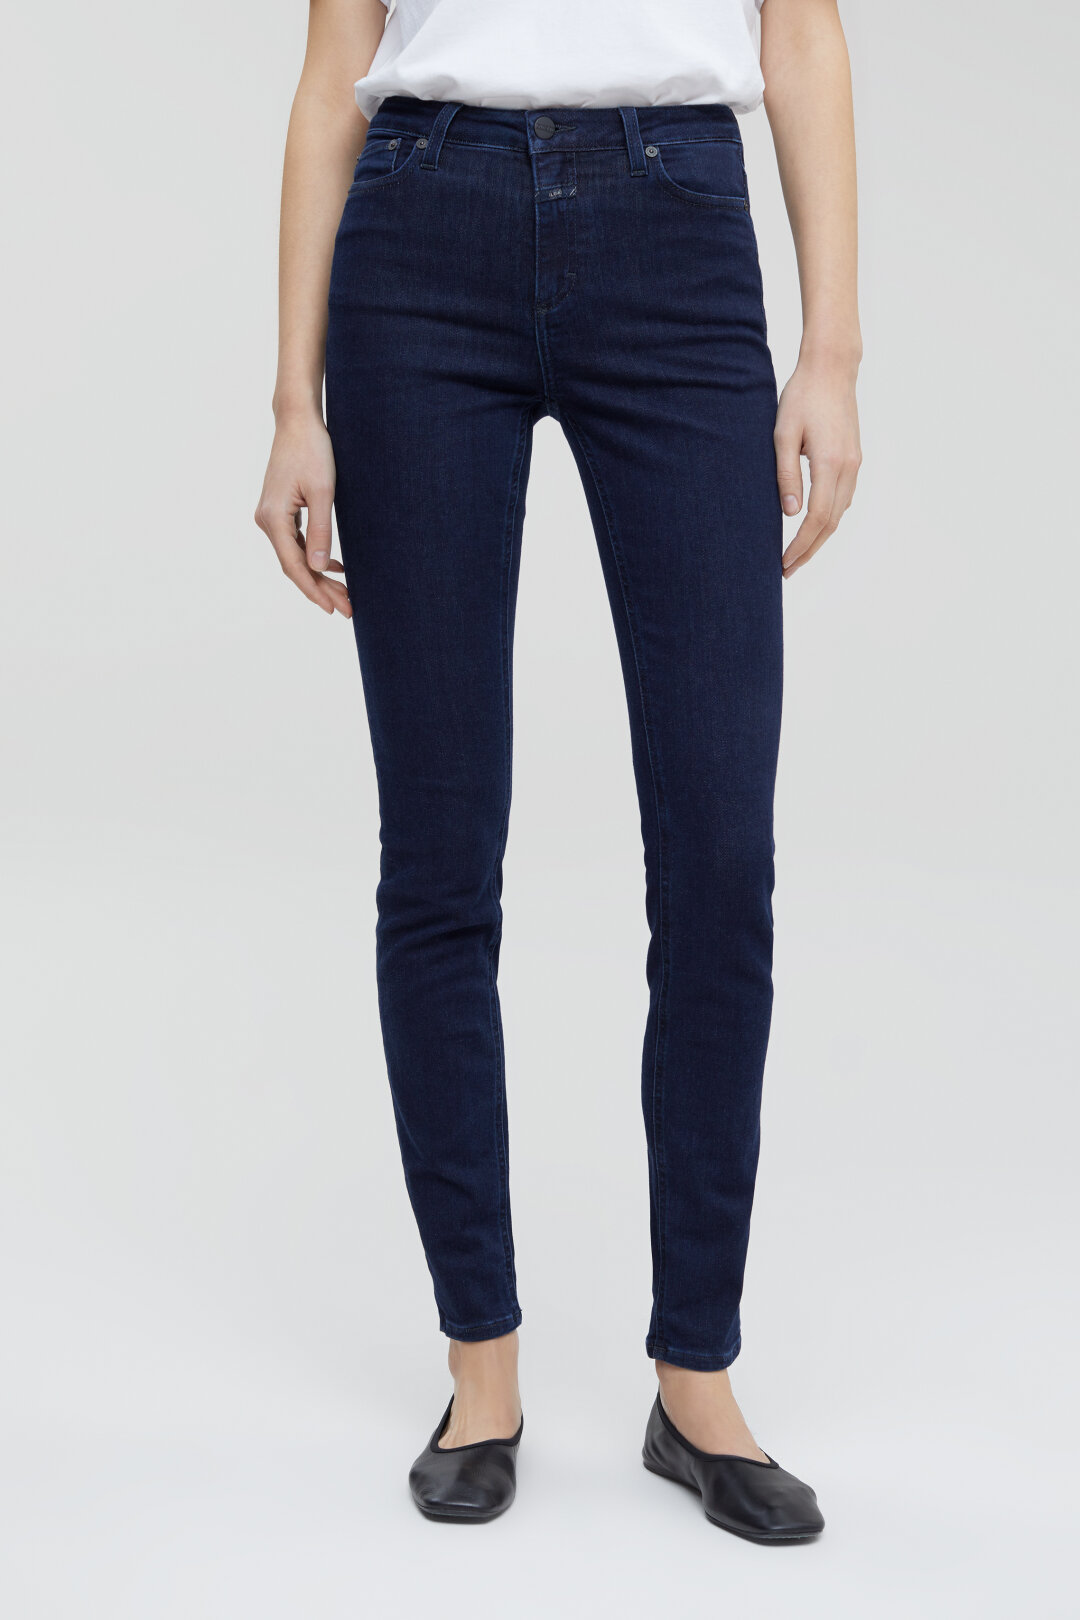 Lizzy Power Stretch Blue Denim